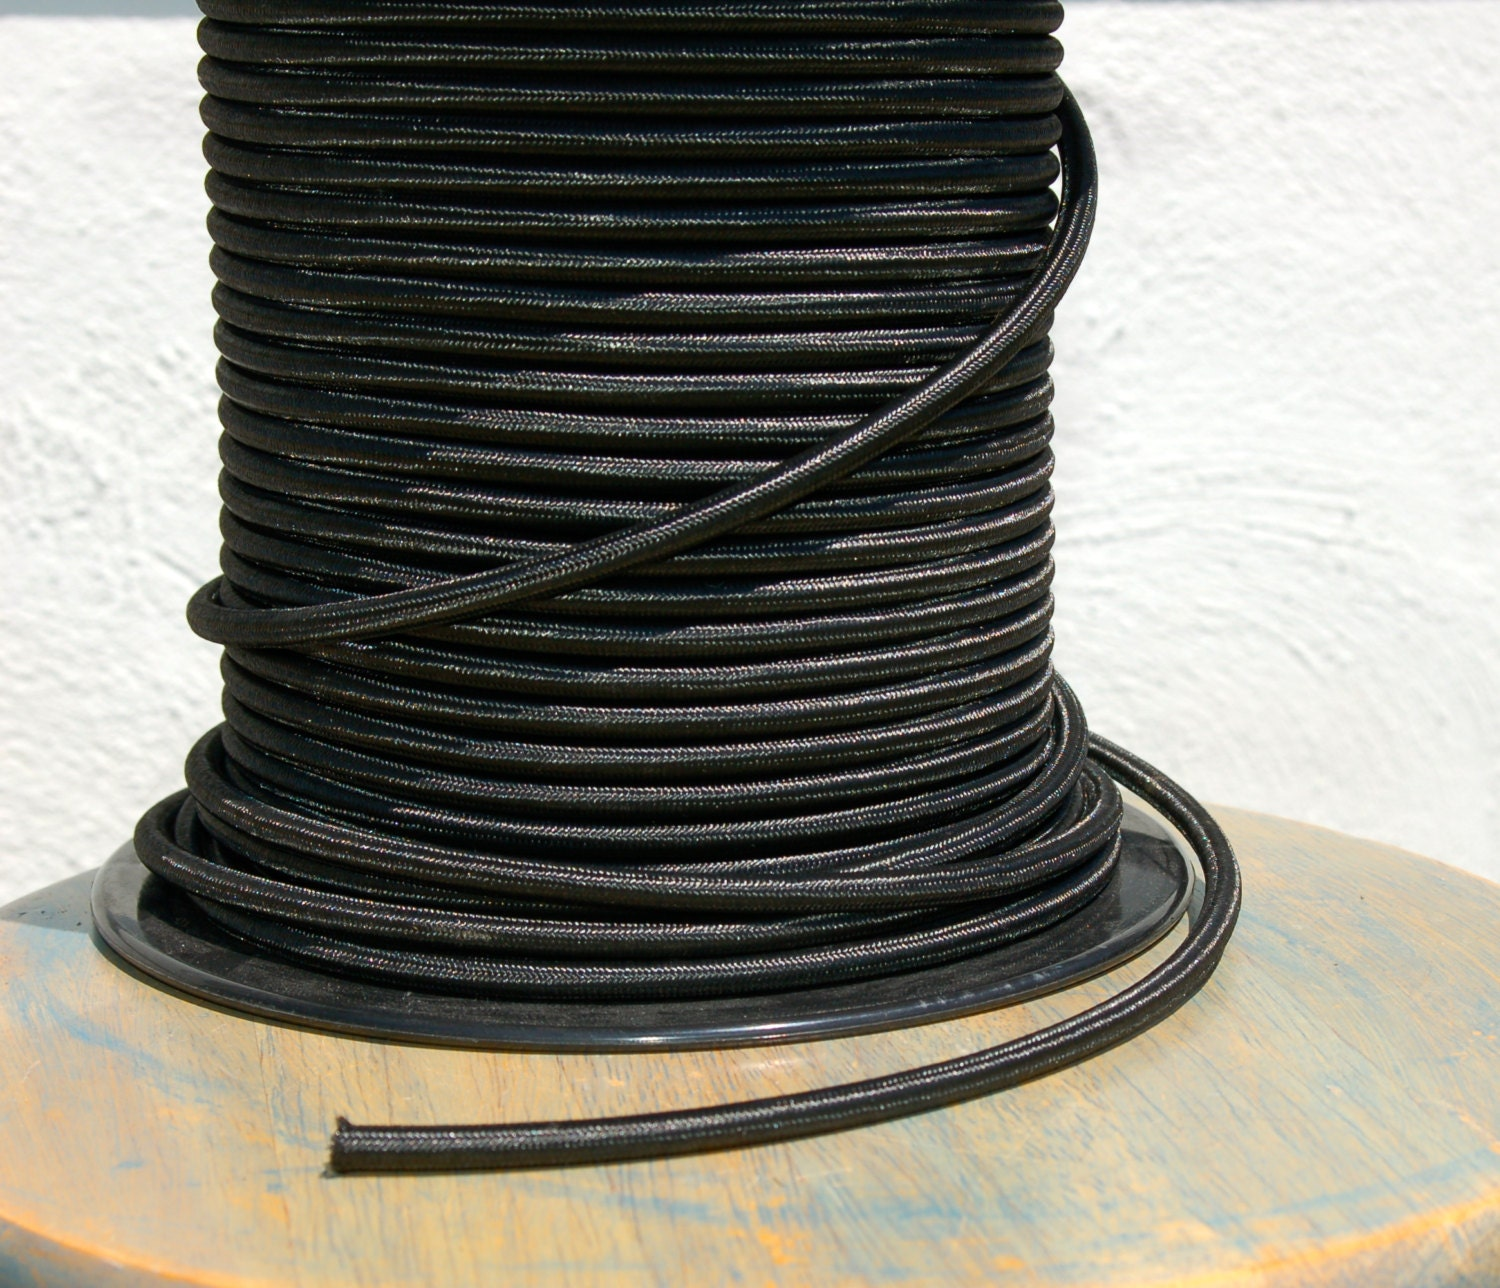 6 Feet Black Rayon Cloth Covered 3 Wire Round Cord